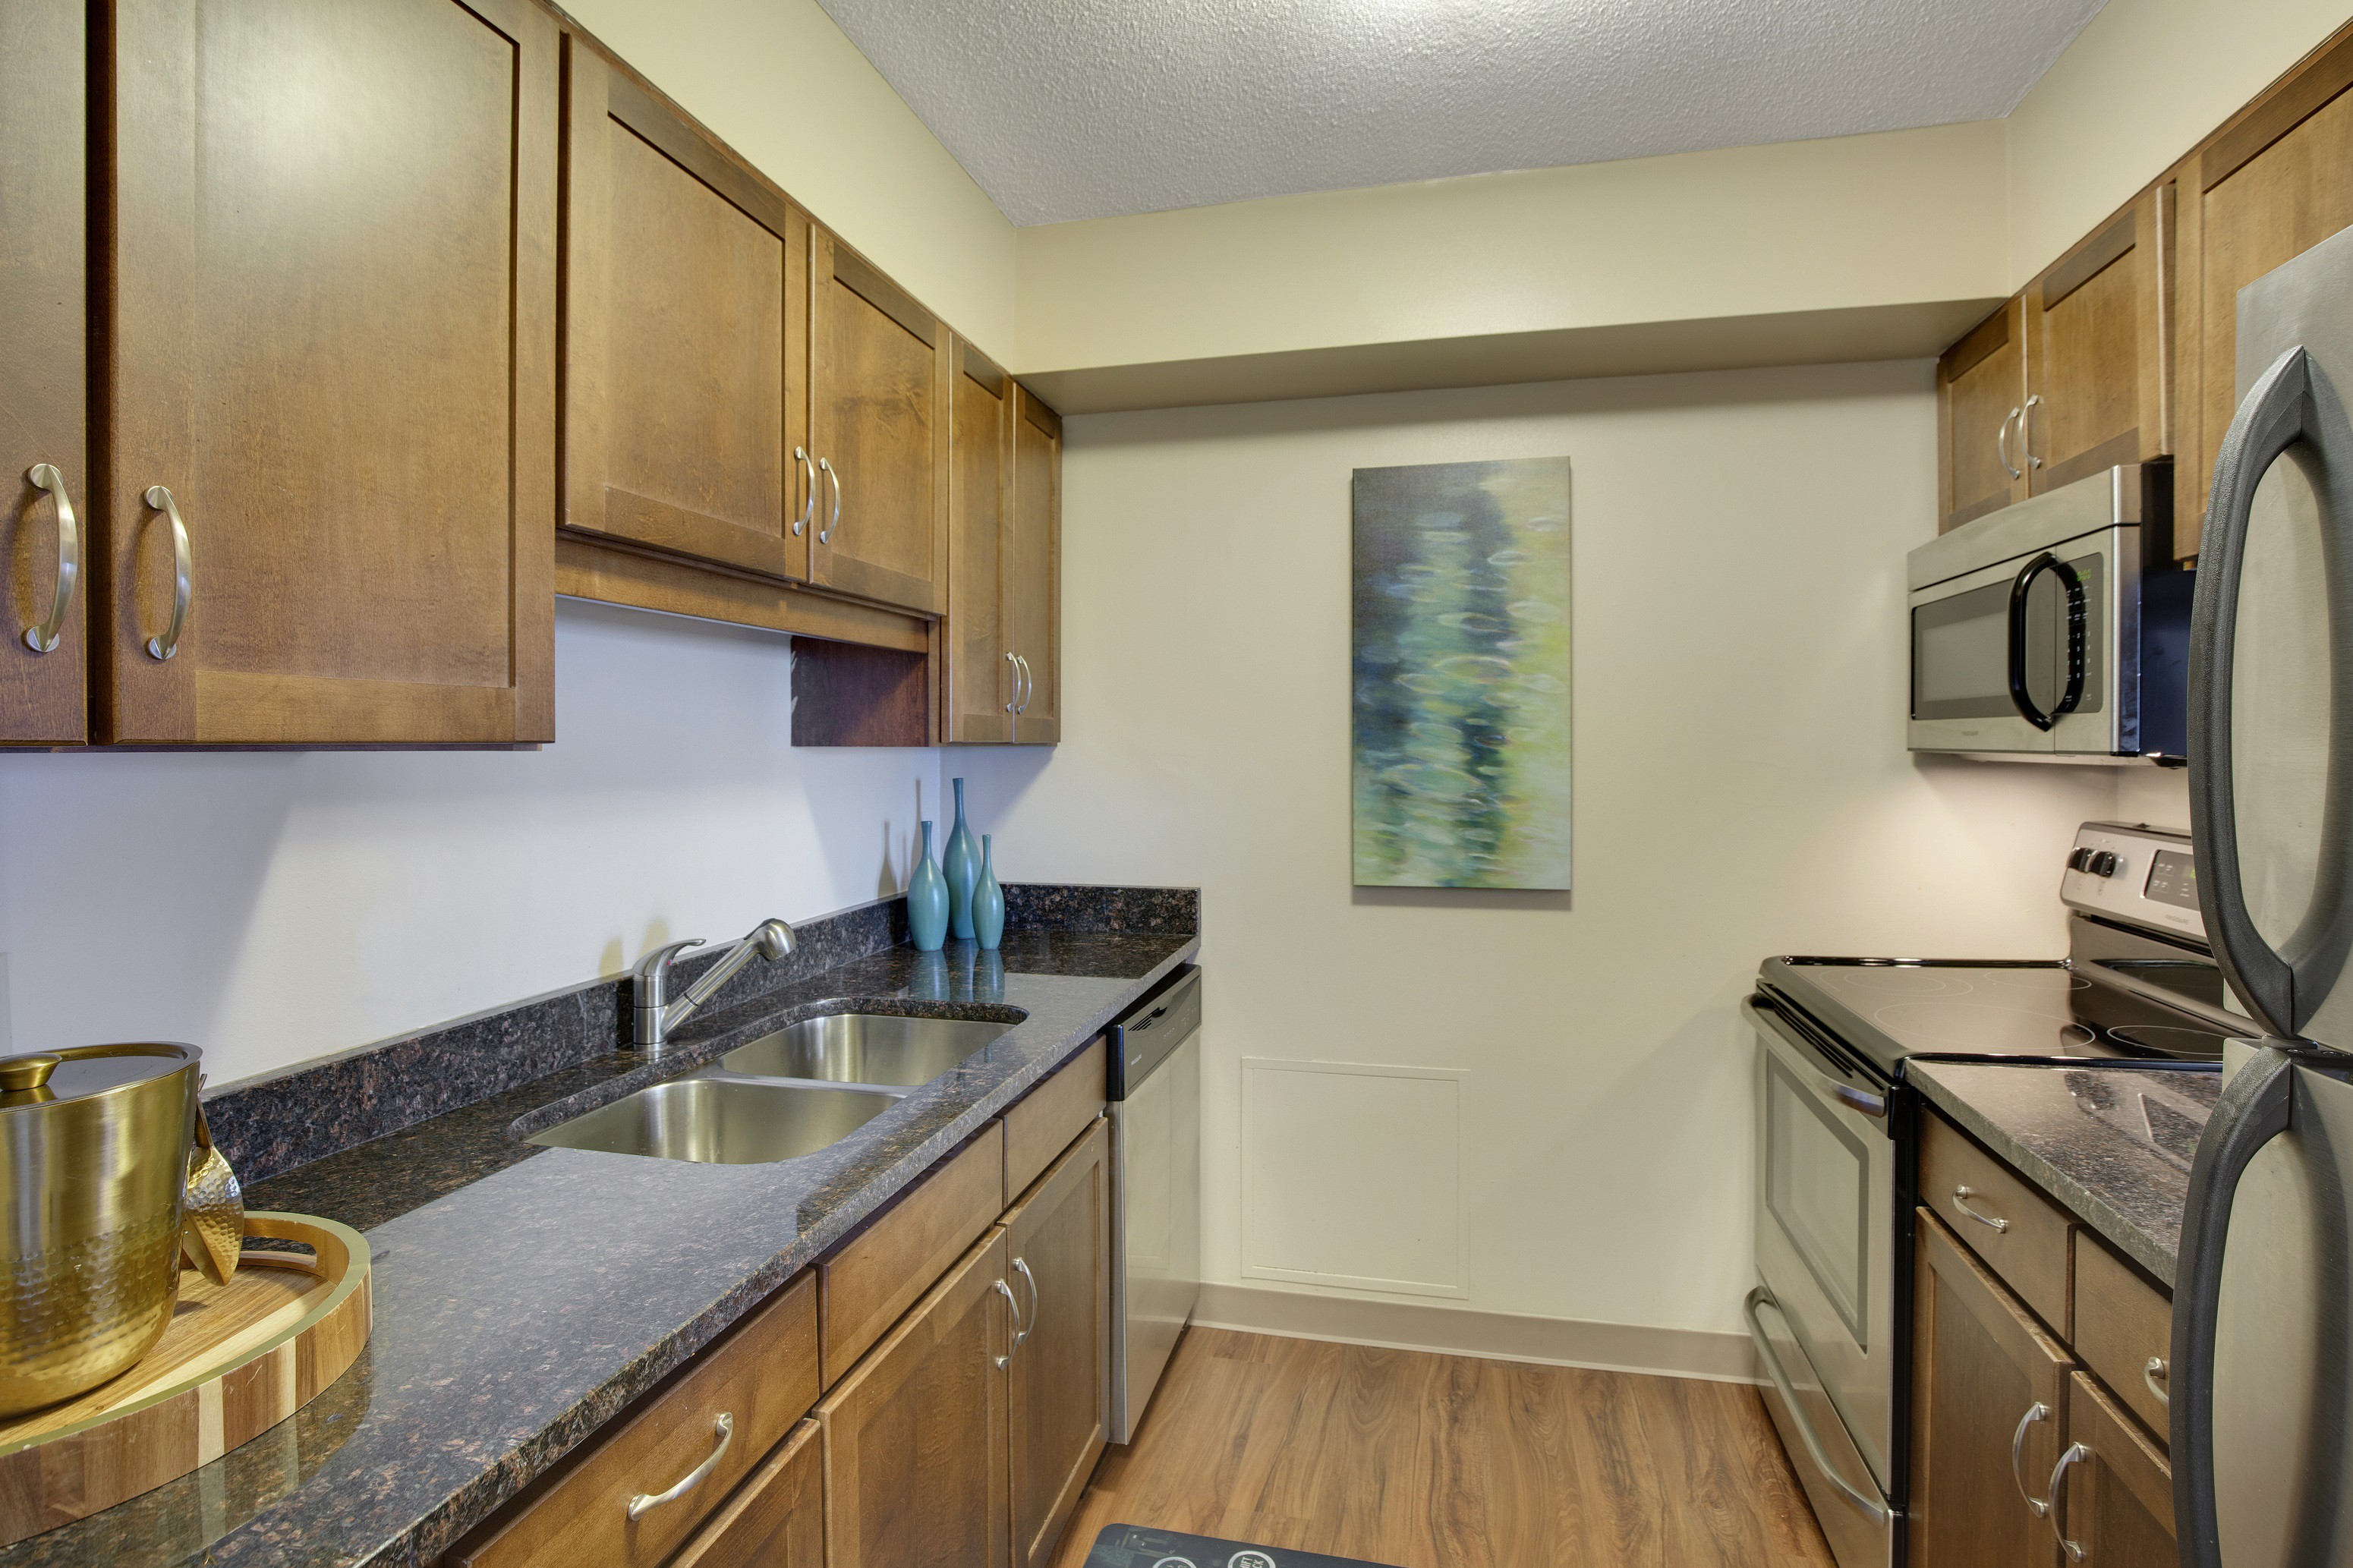 Apartments Near Macalester Kellogg Square for Macalester College Students in Saint Paul, MN